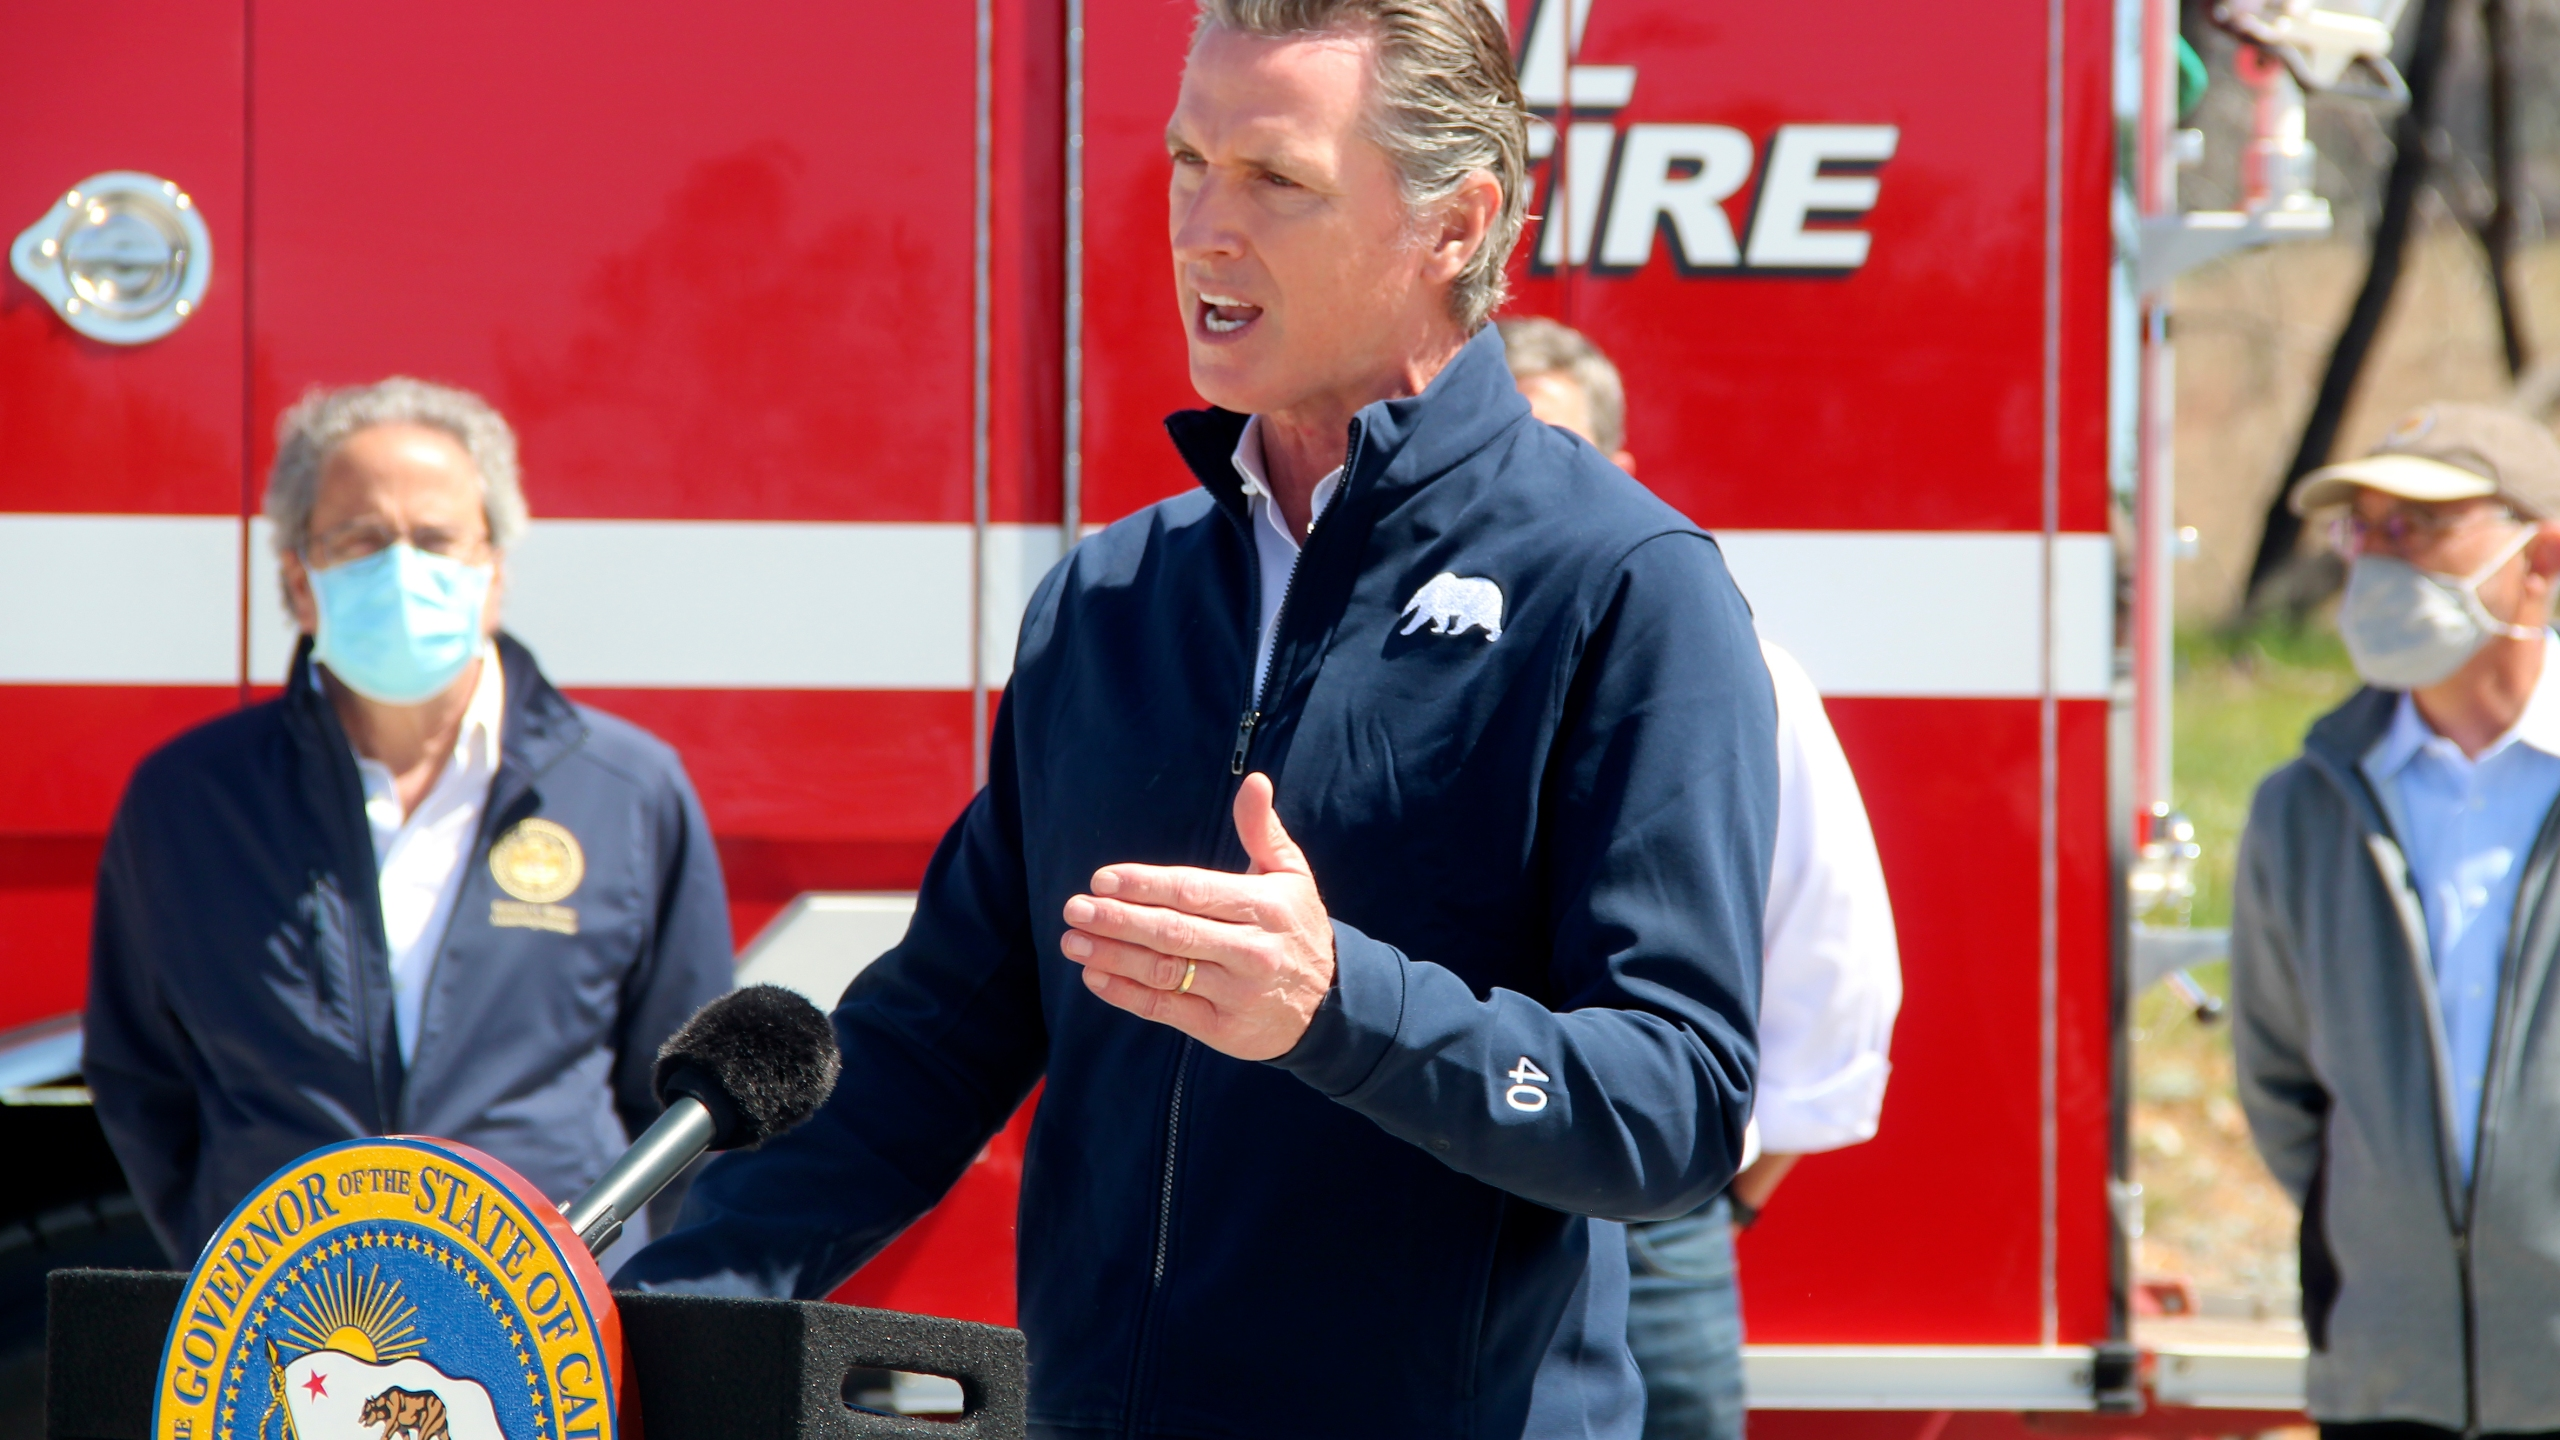 California Gov. Gavin Newsom is seen after signing the legislation into law that authorizes more than half a billion in new spending to prepare for wildfire season on April 13, 2021, at the Loafer Creek State Recreation Area in Oroville, Calif. (Adam Beam / Associated Press)